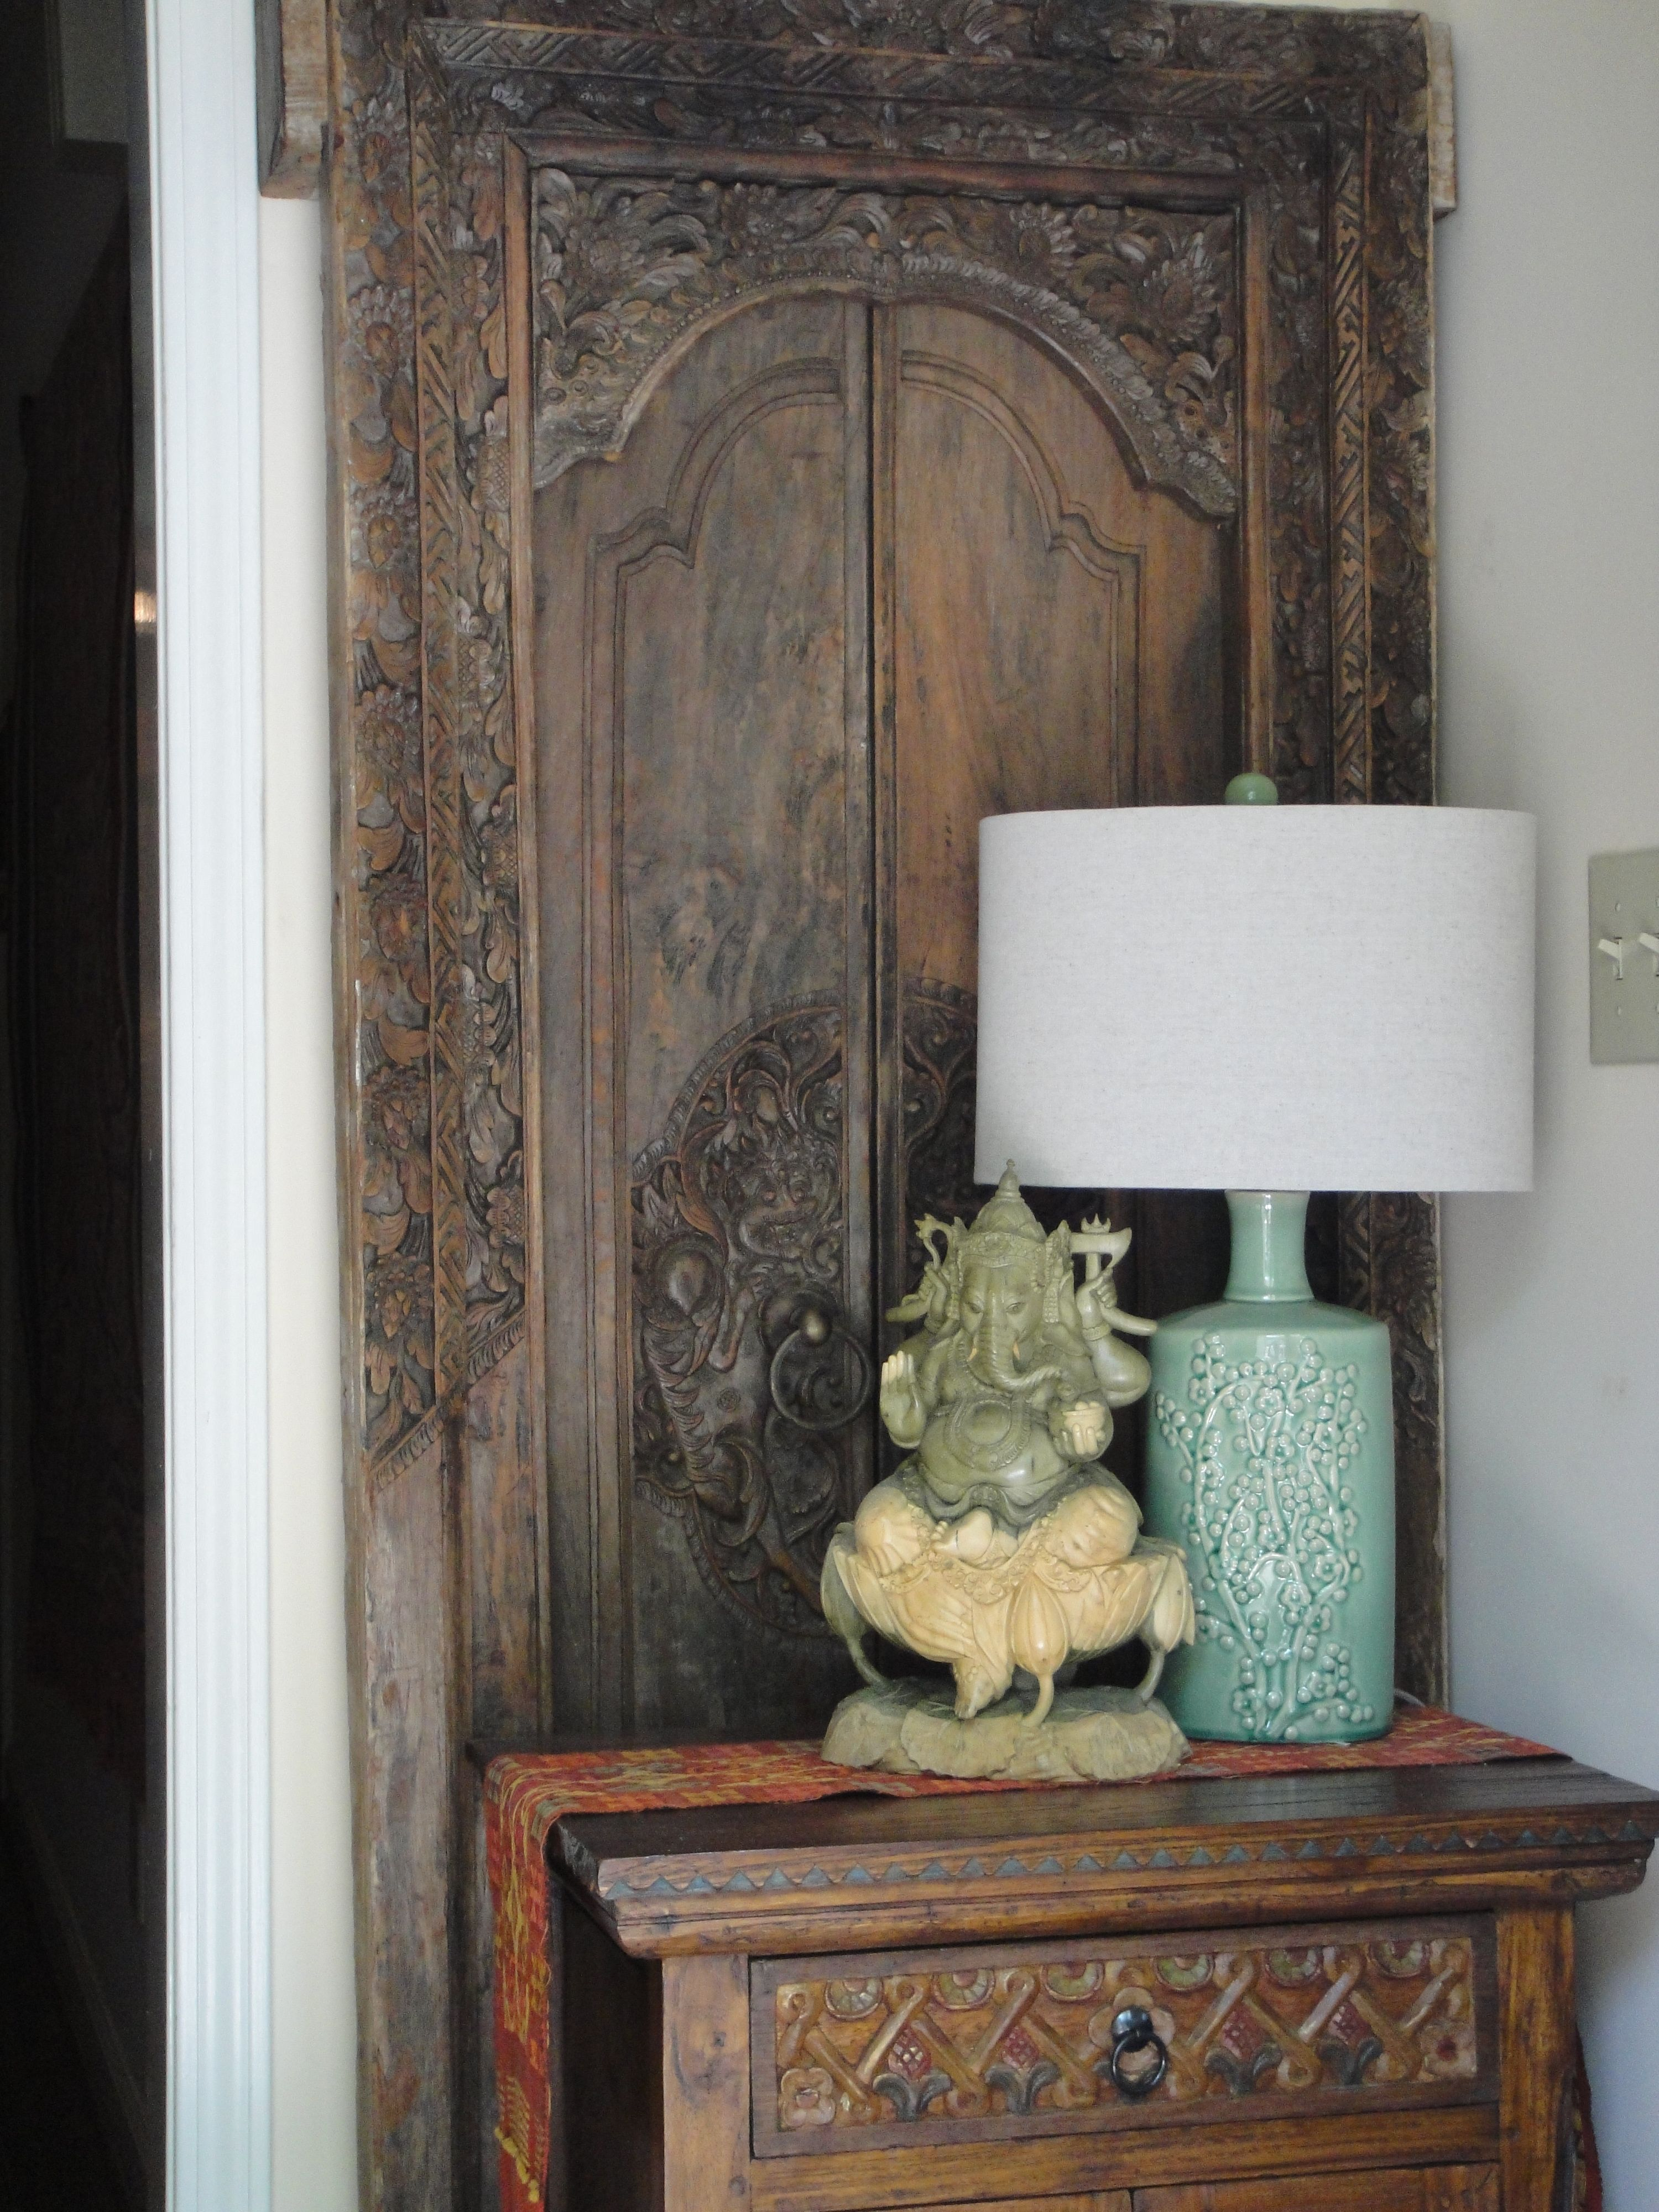 Ethnic Entryway   Antique Balinese Door  Ganesha wood Carving from Bali and  teak cabinet. Ethnic Entryway   Antique Balinese Door  Ganesha wood Carving from